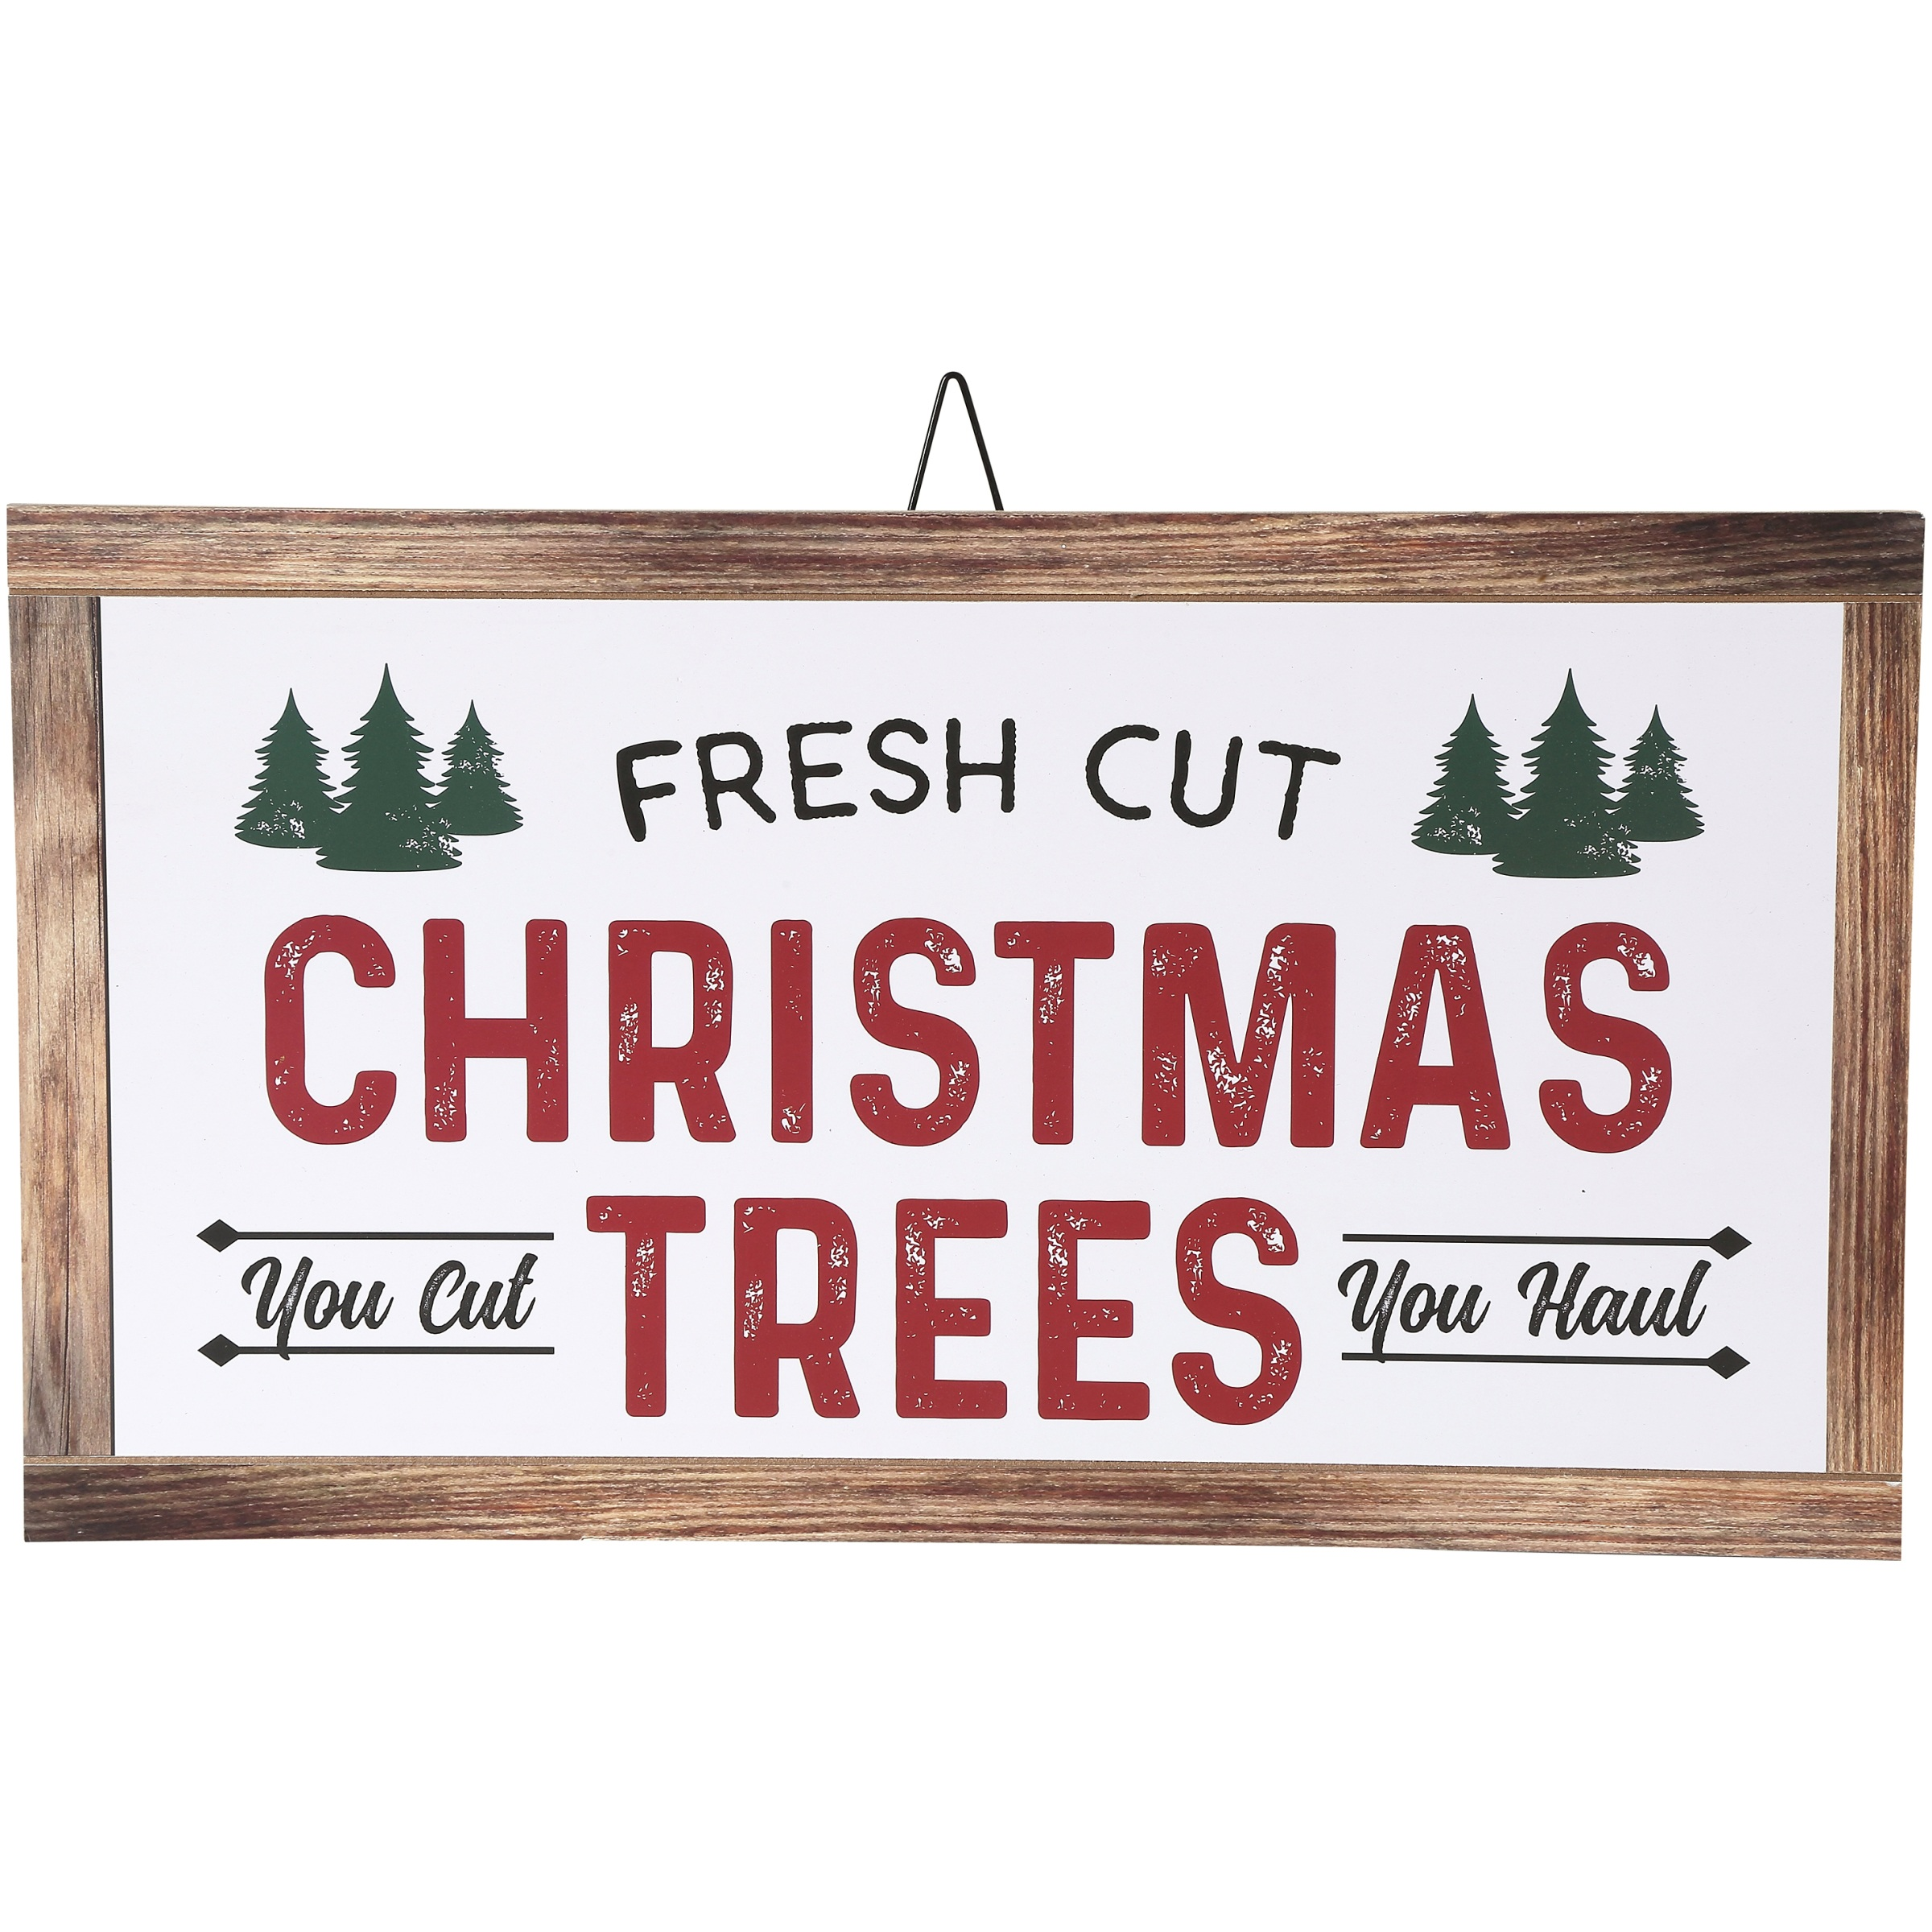 Belham Living Hanging Decor, White with Fresh Cut Christmas Trees Text